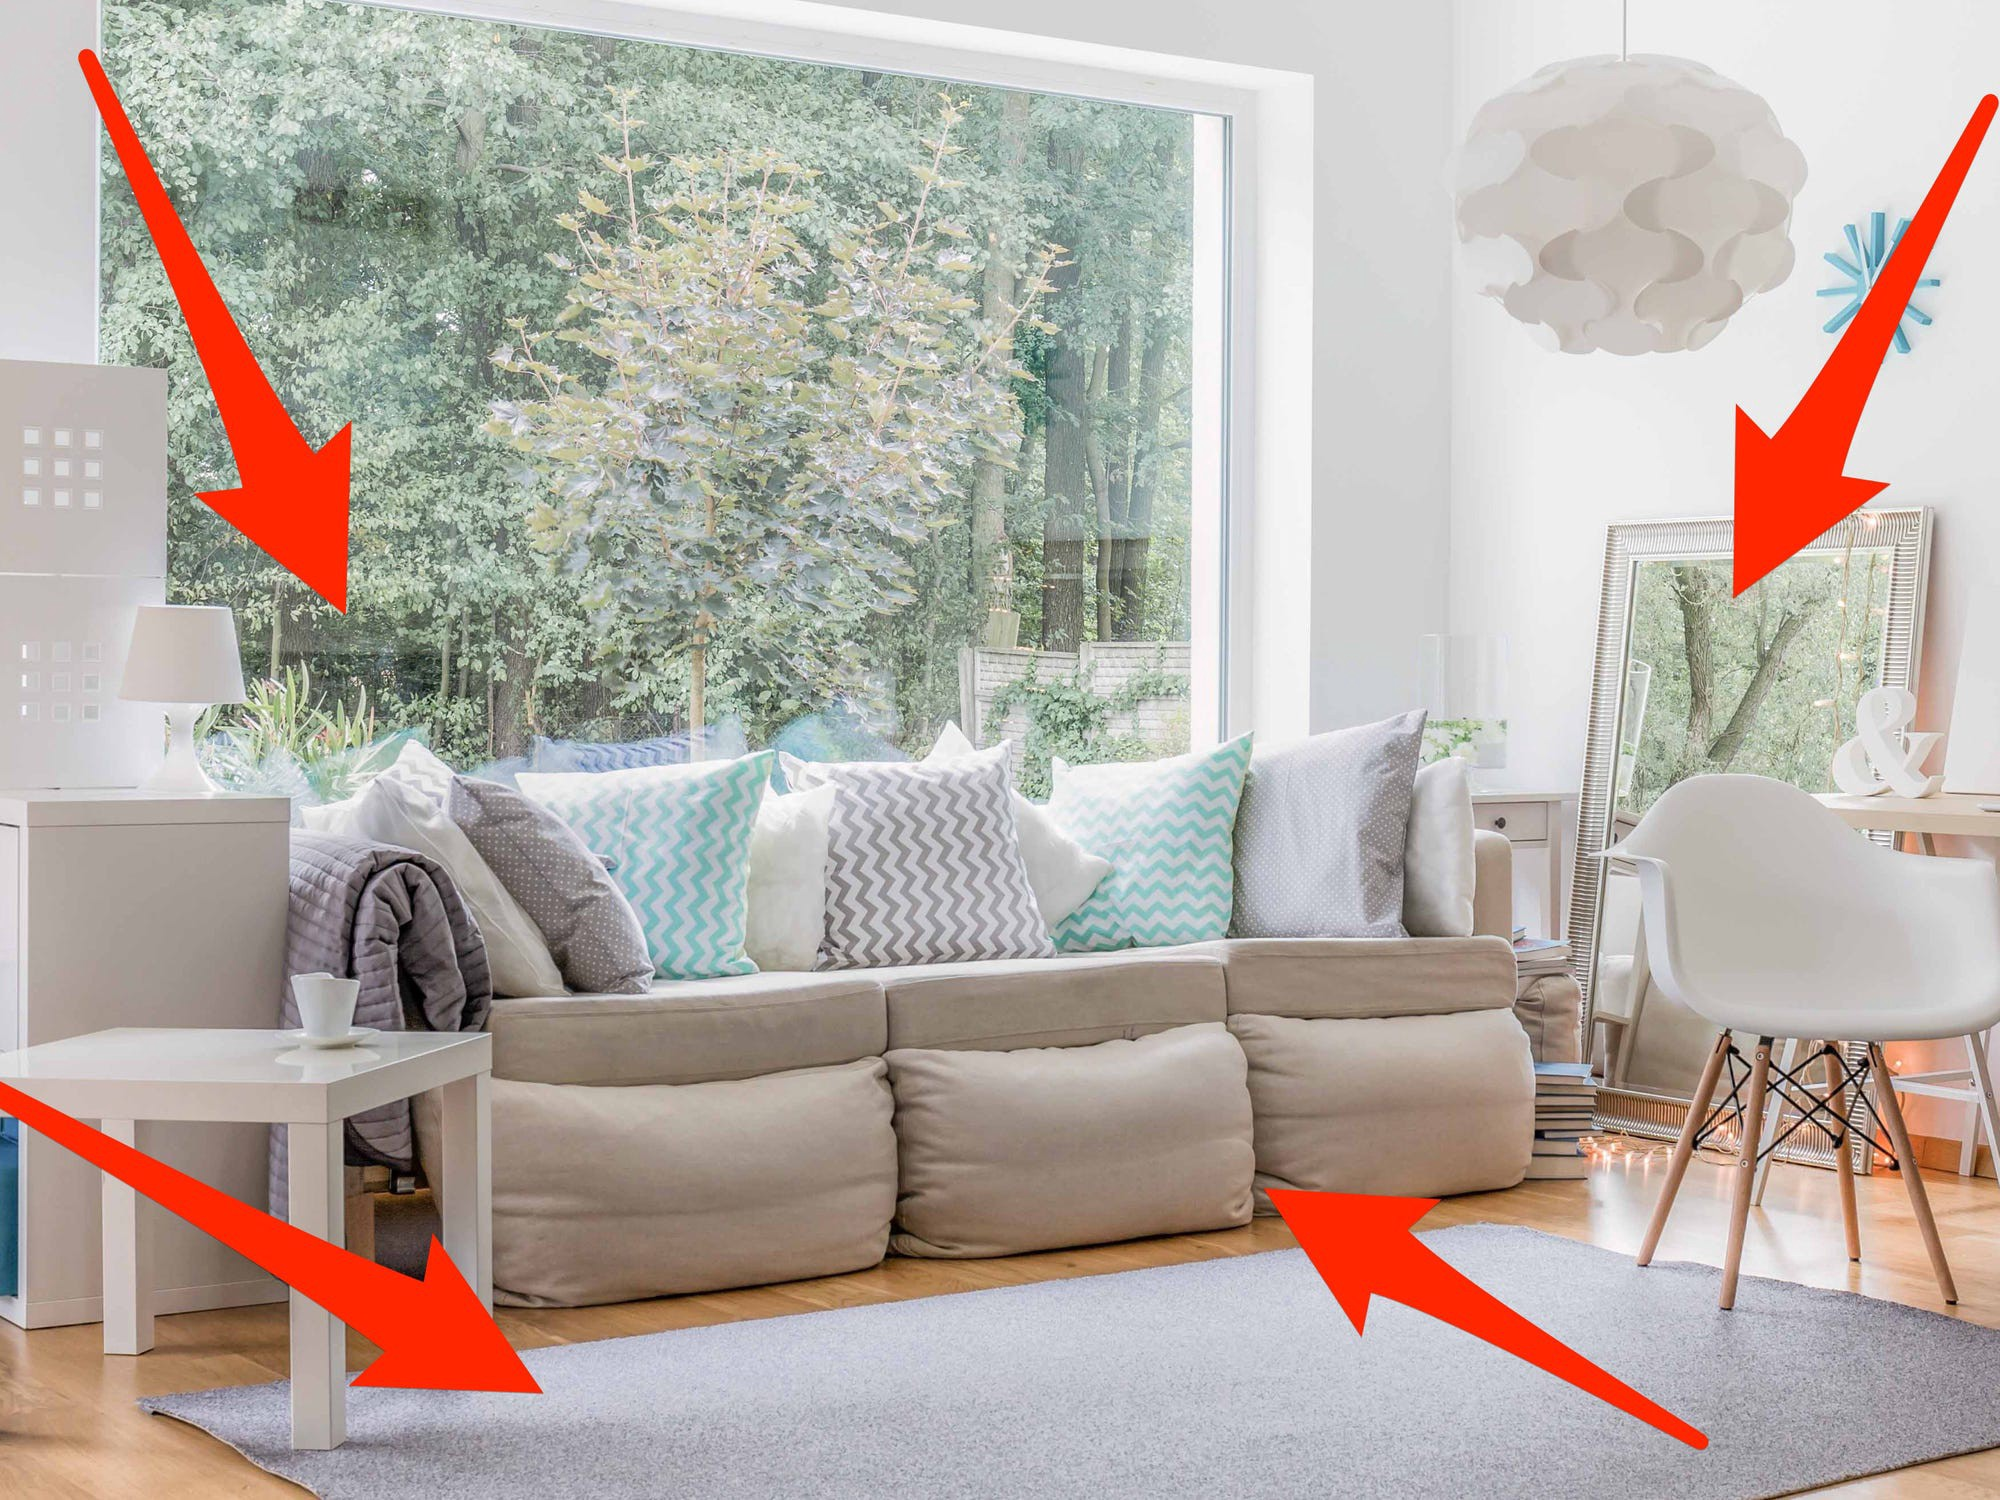 Arrows pointing to living room furniture.